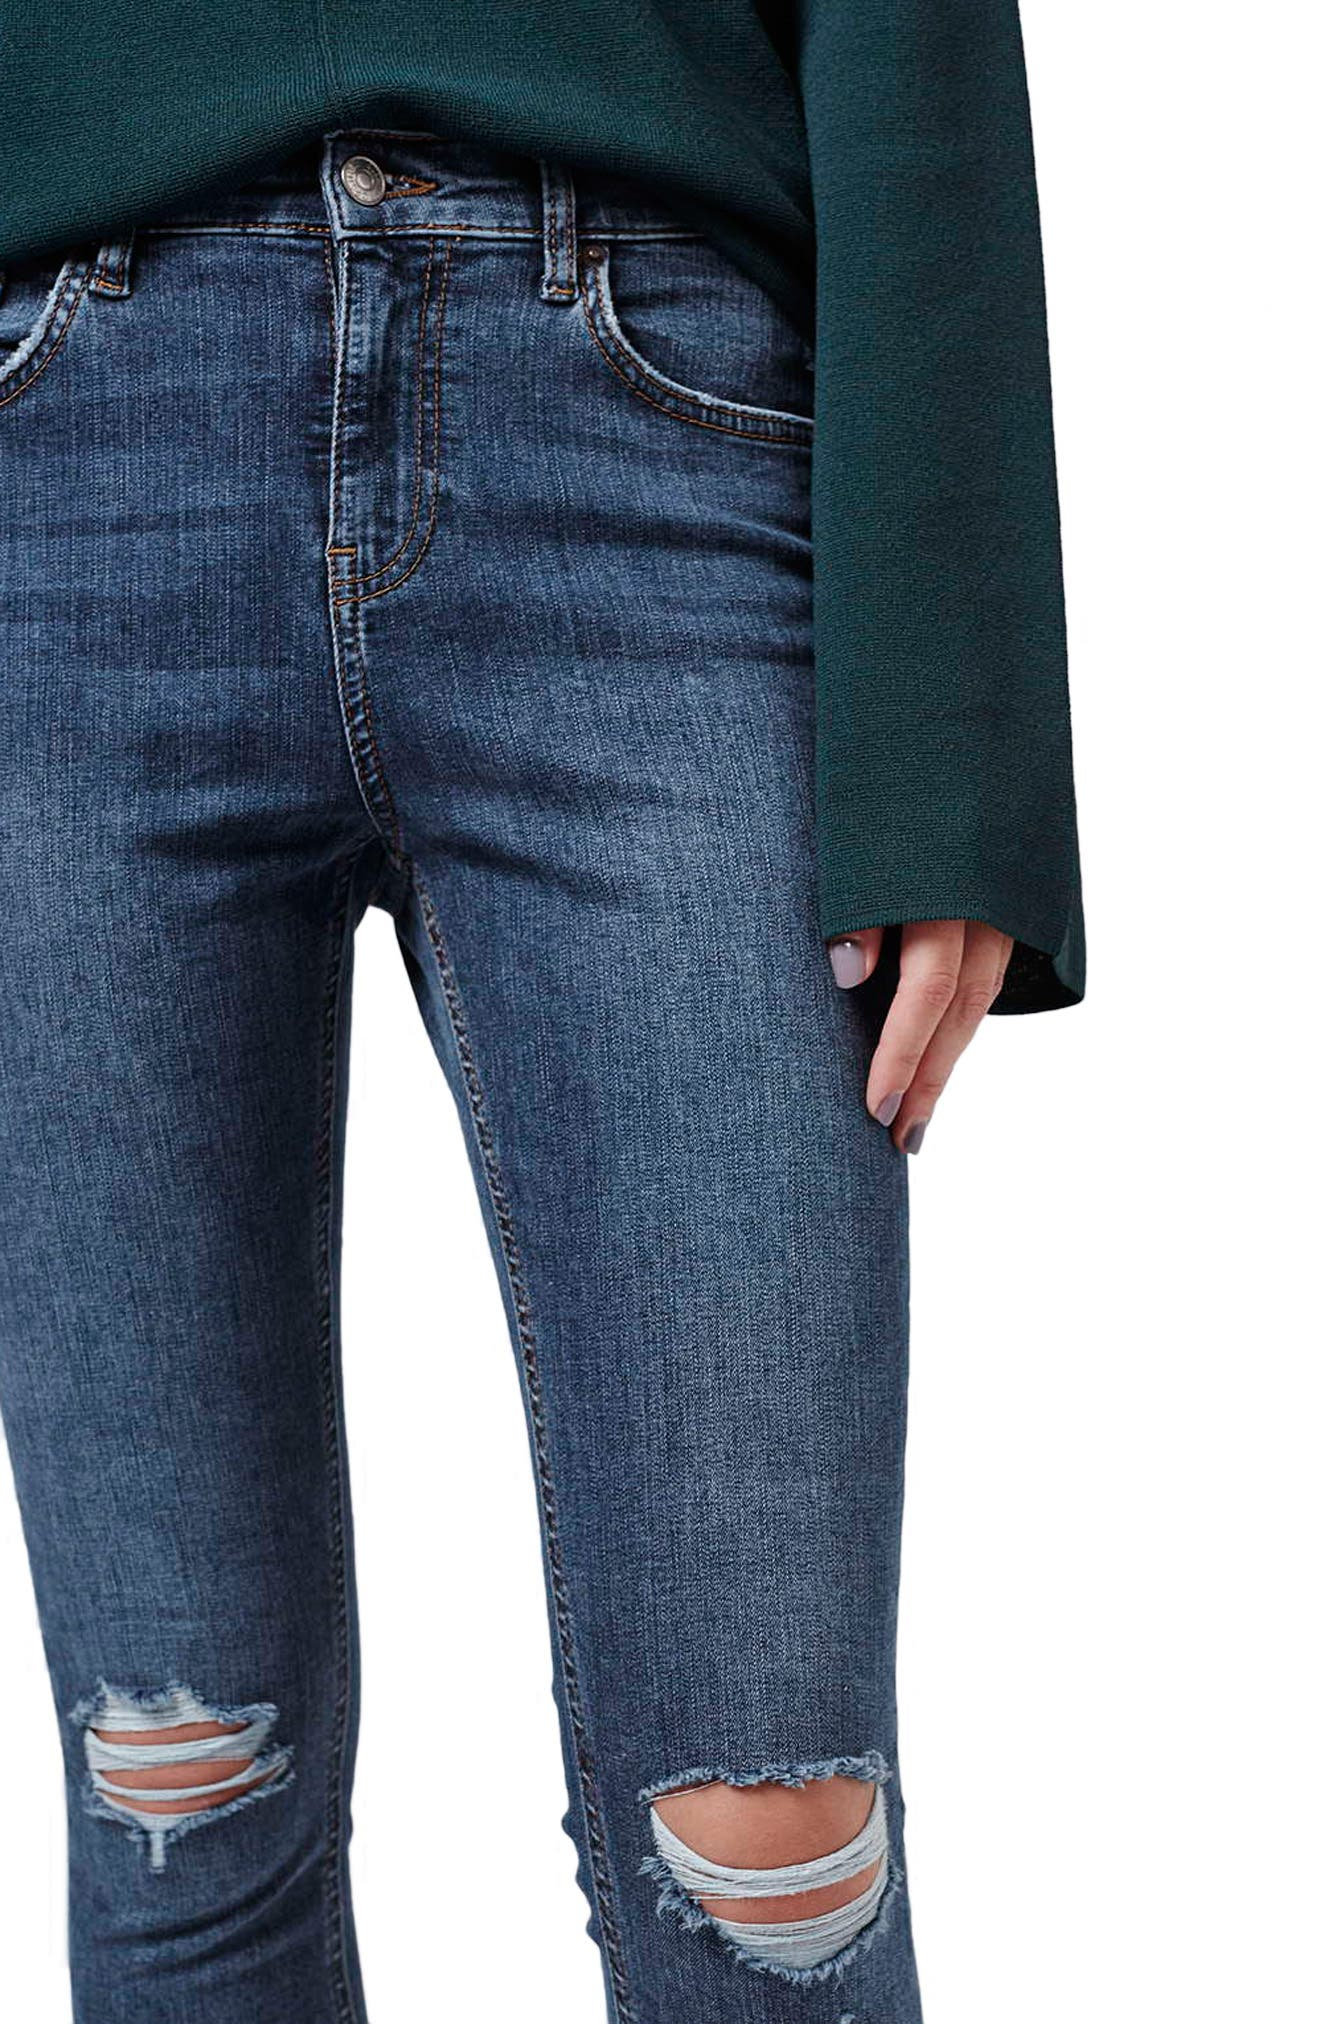 TOPSHOP, Moto 'Jamie' Ripped Skinny Ankle Jeans, Alternate thumbnail 7, color, MID DENIM